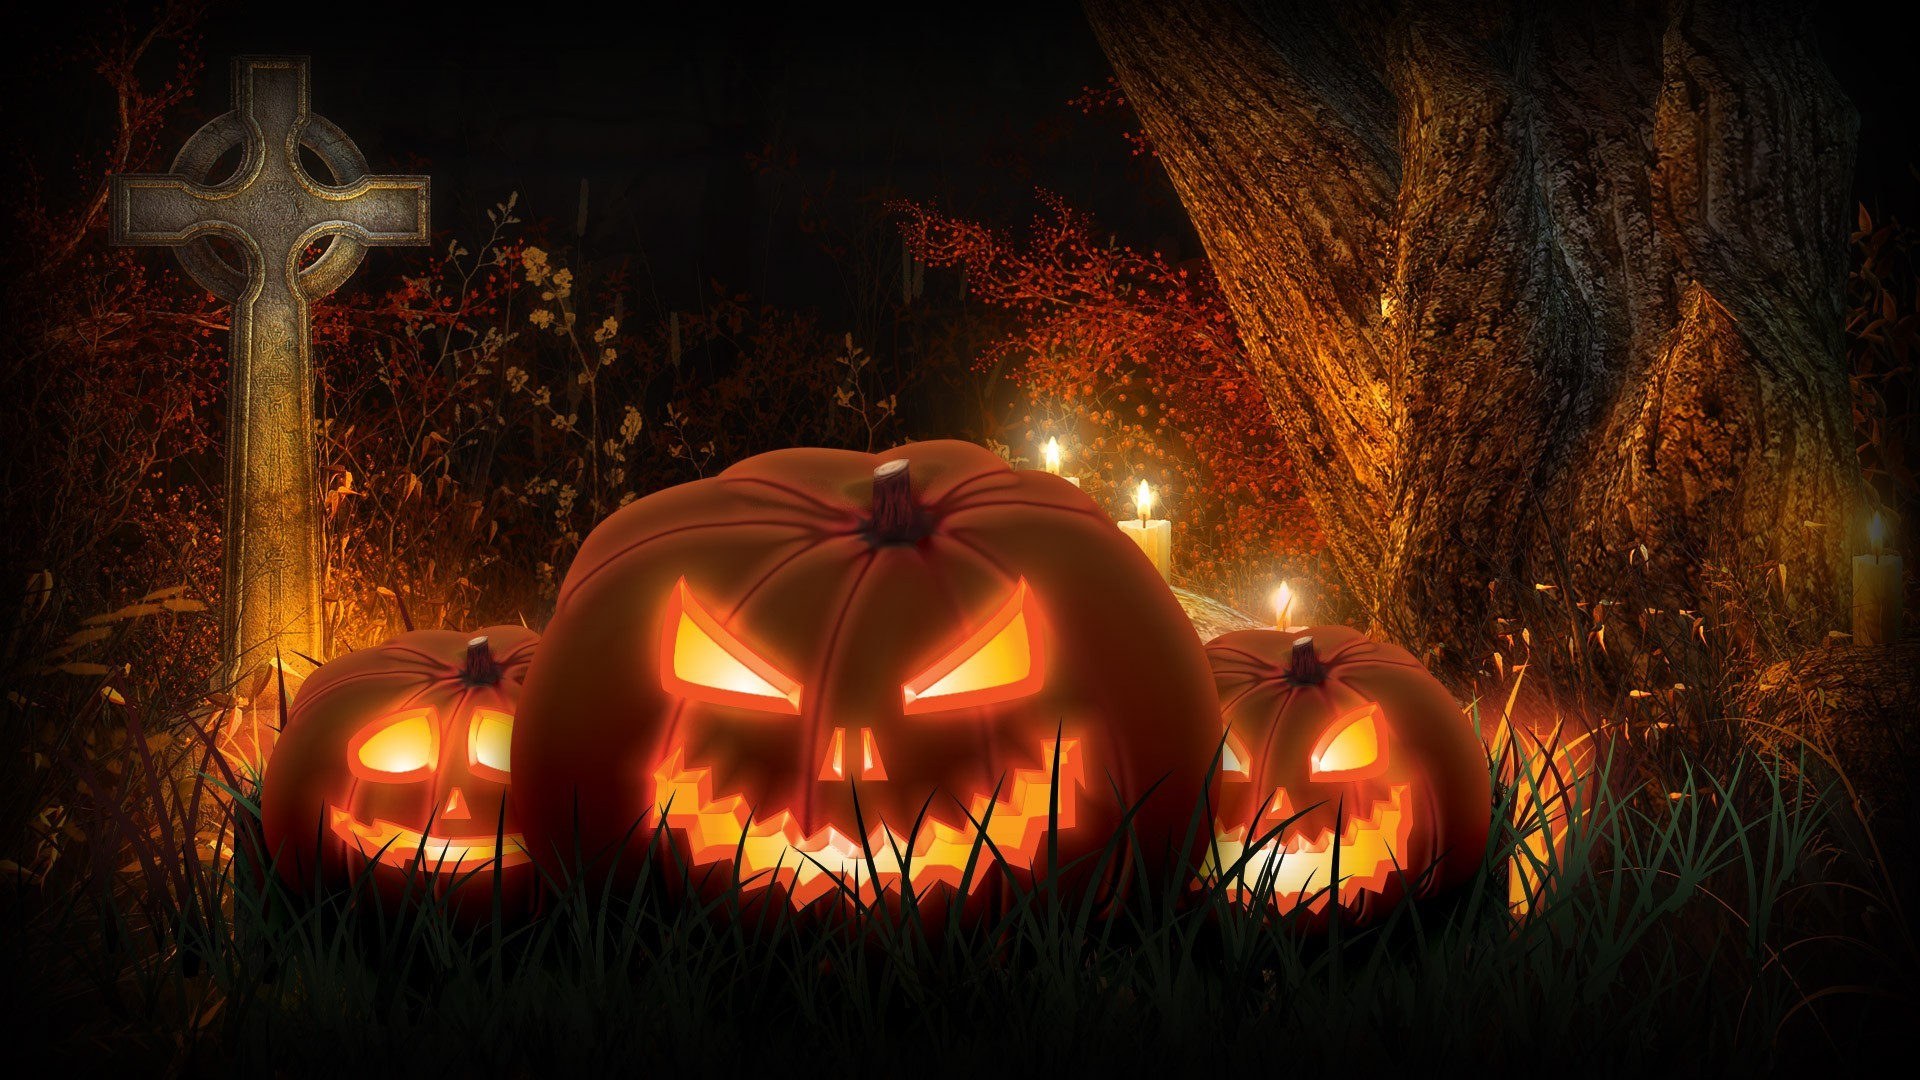 2560x1600 Desktop Halloween Wallpapers HD.